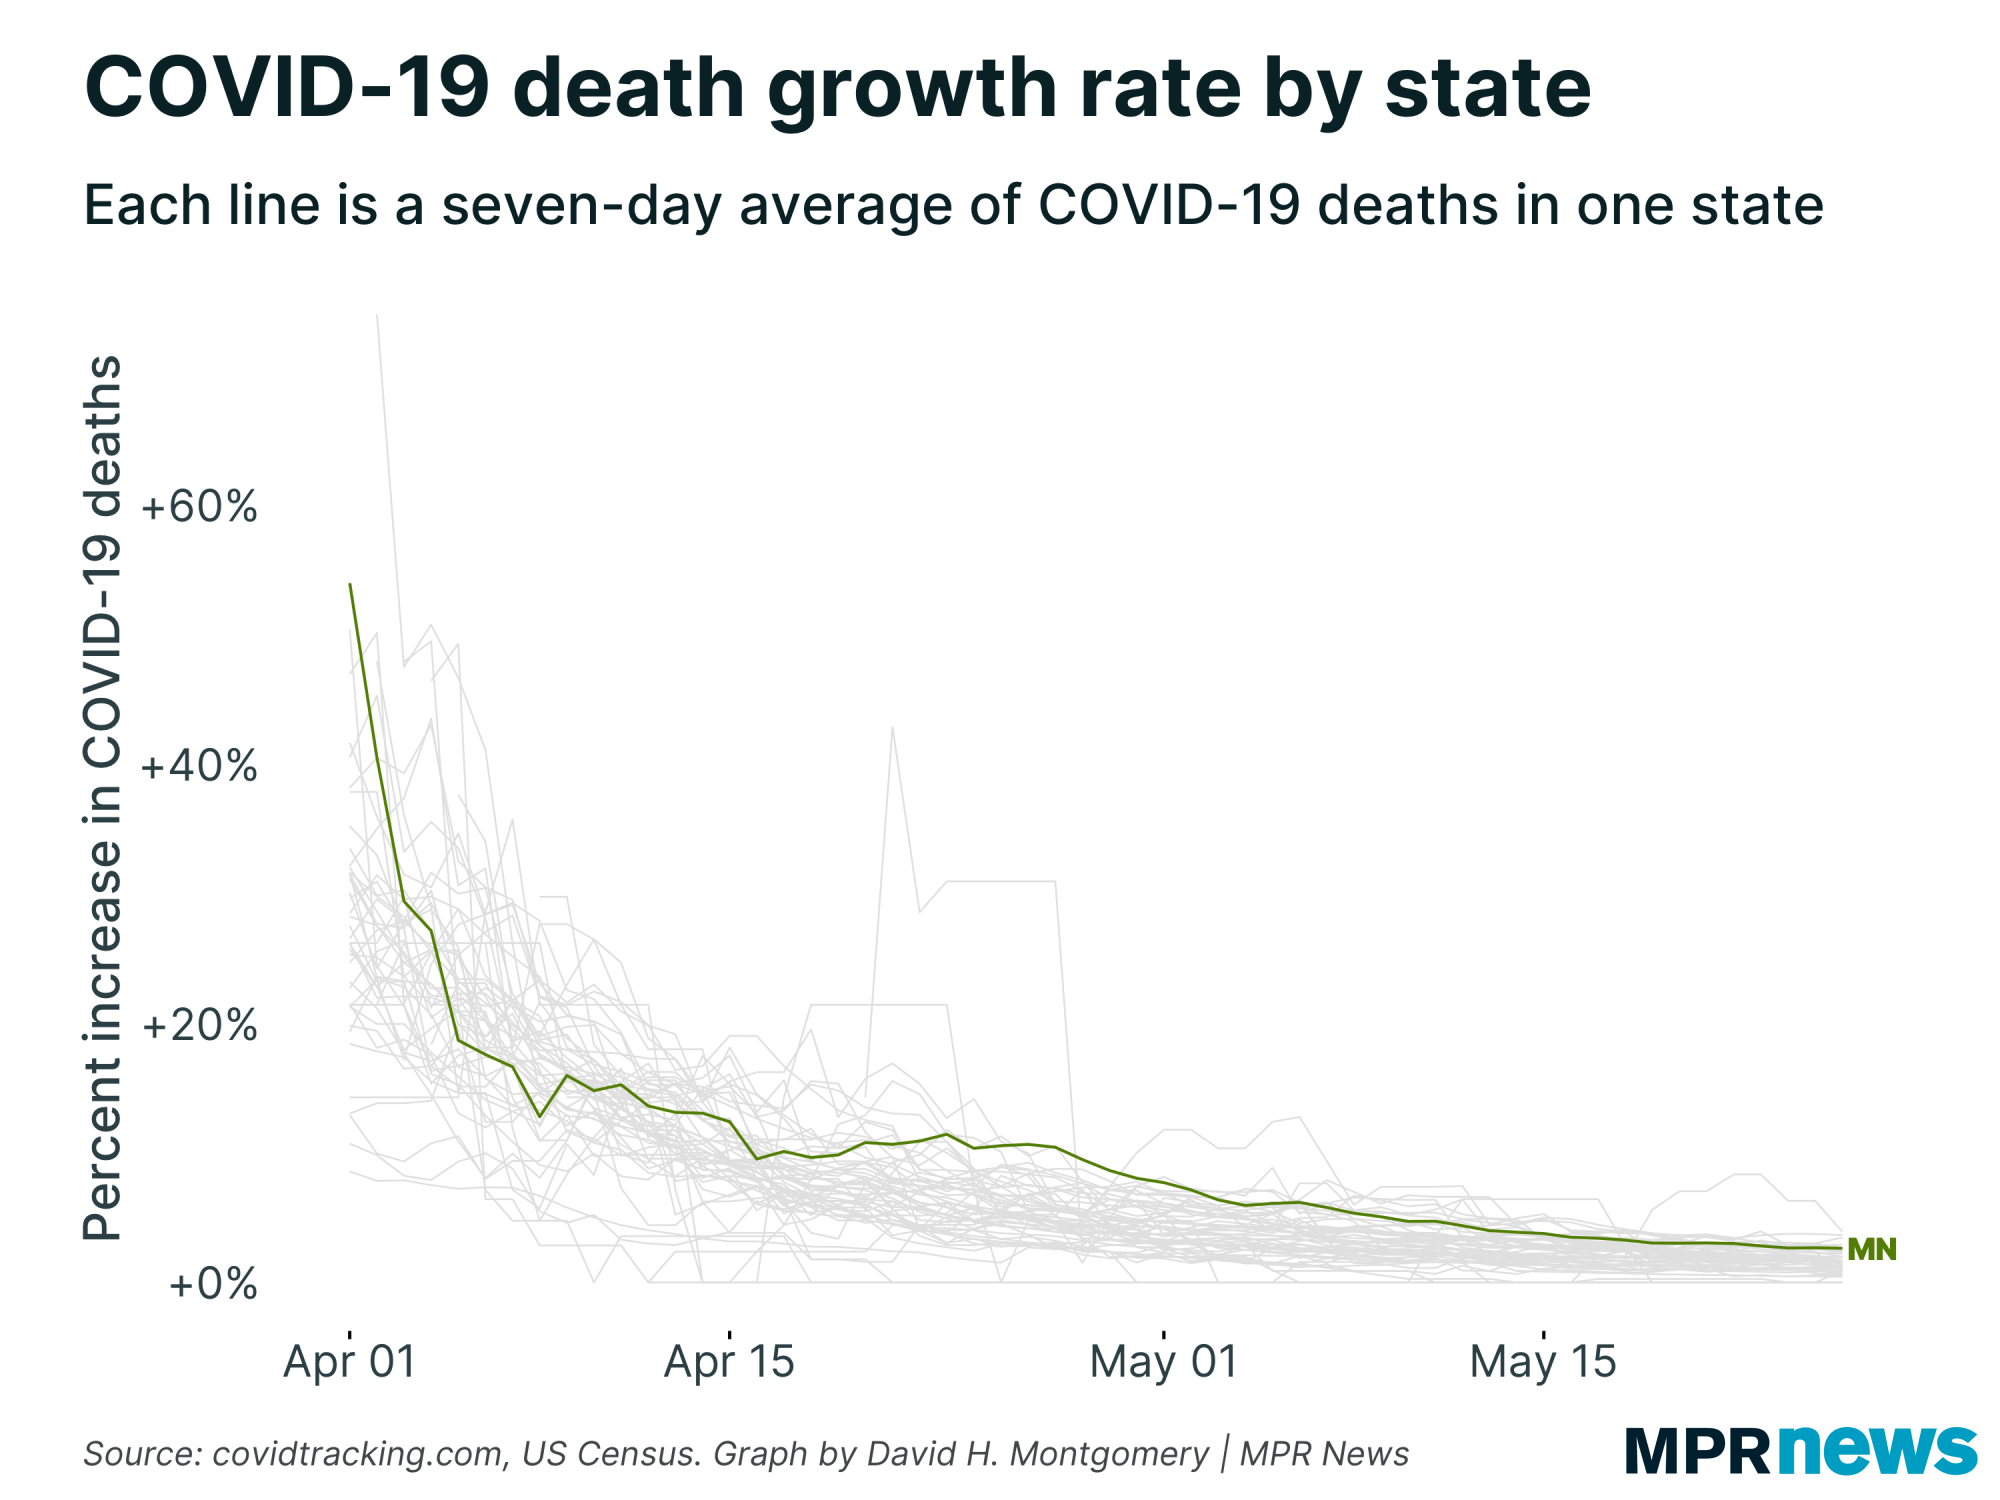 Growth of 新冠肺炎 deaths in 明尼苏达州 vs. other states